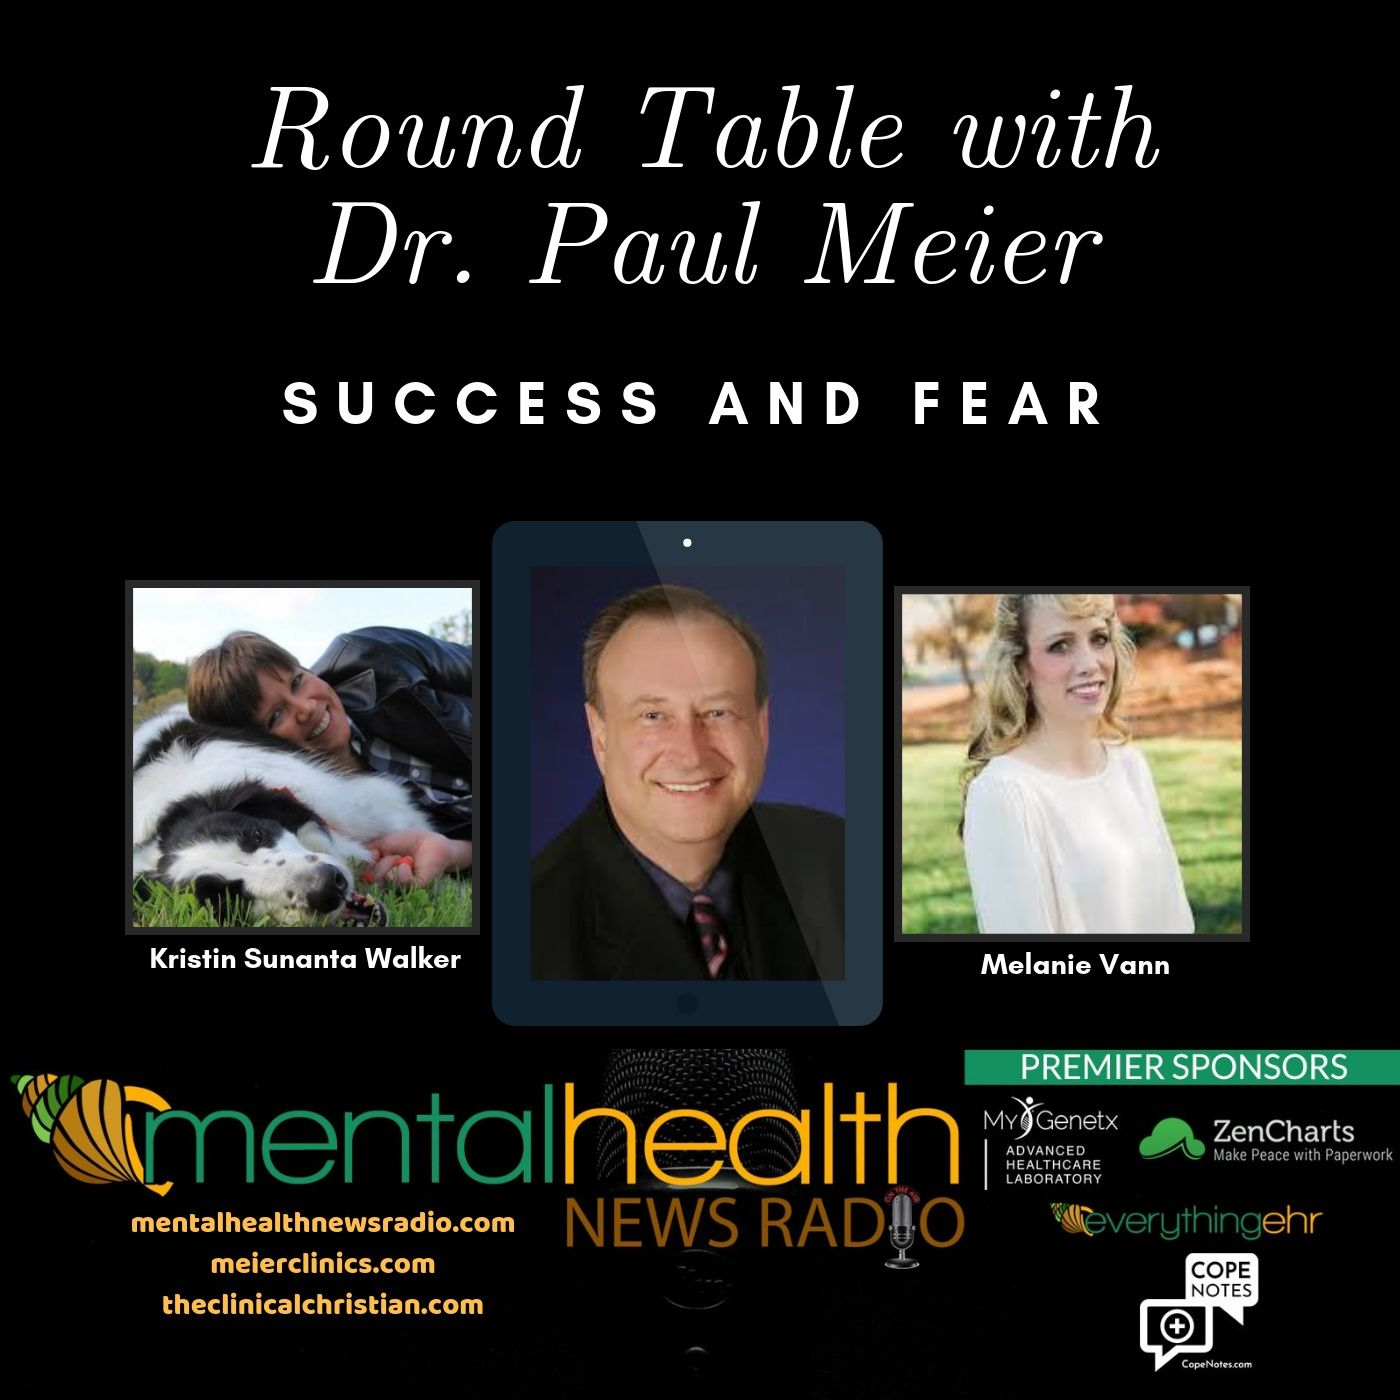 Mental Health News Radio - Round Table with Dr. Paul Meier: Fear and Success